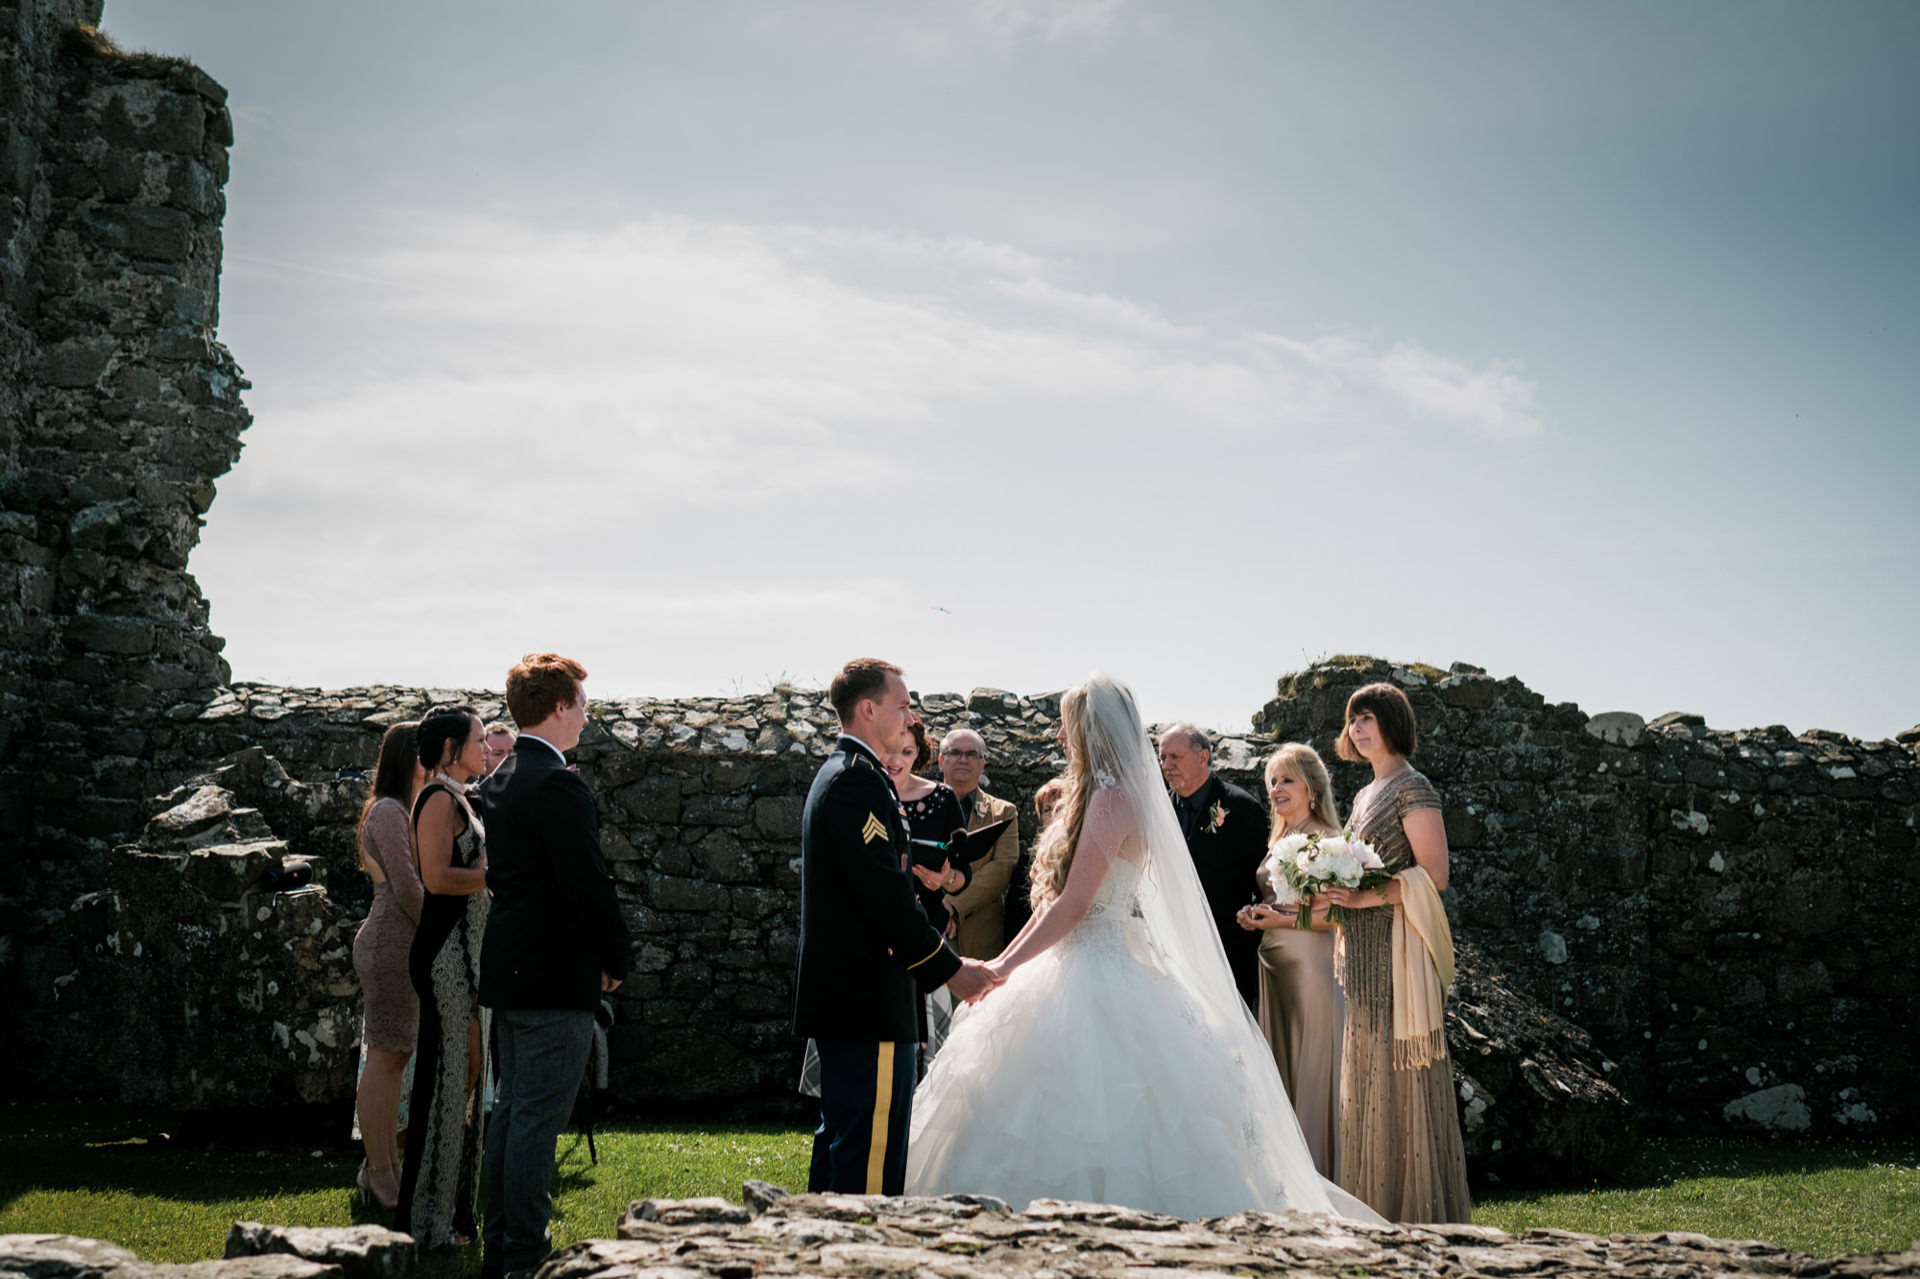 Elopement Ceremony Picture from Dunluce Castle in Northern Ireland | The bride, groom, and their immediate family captured